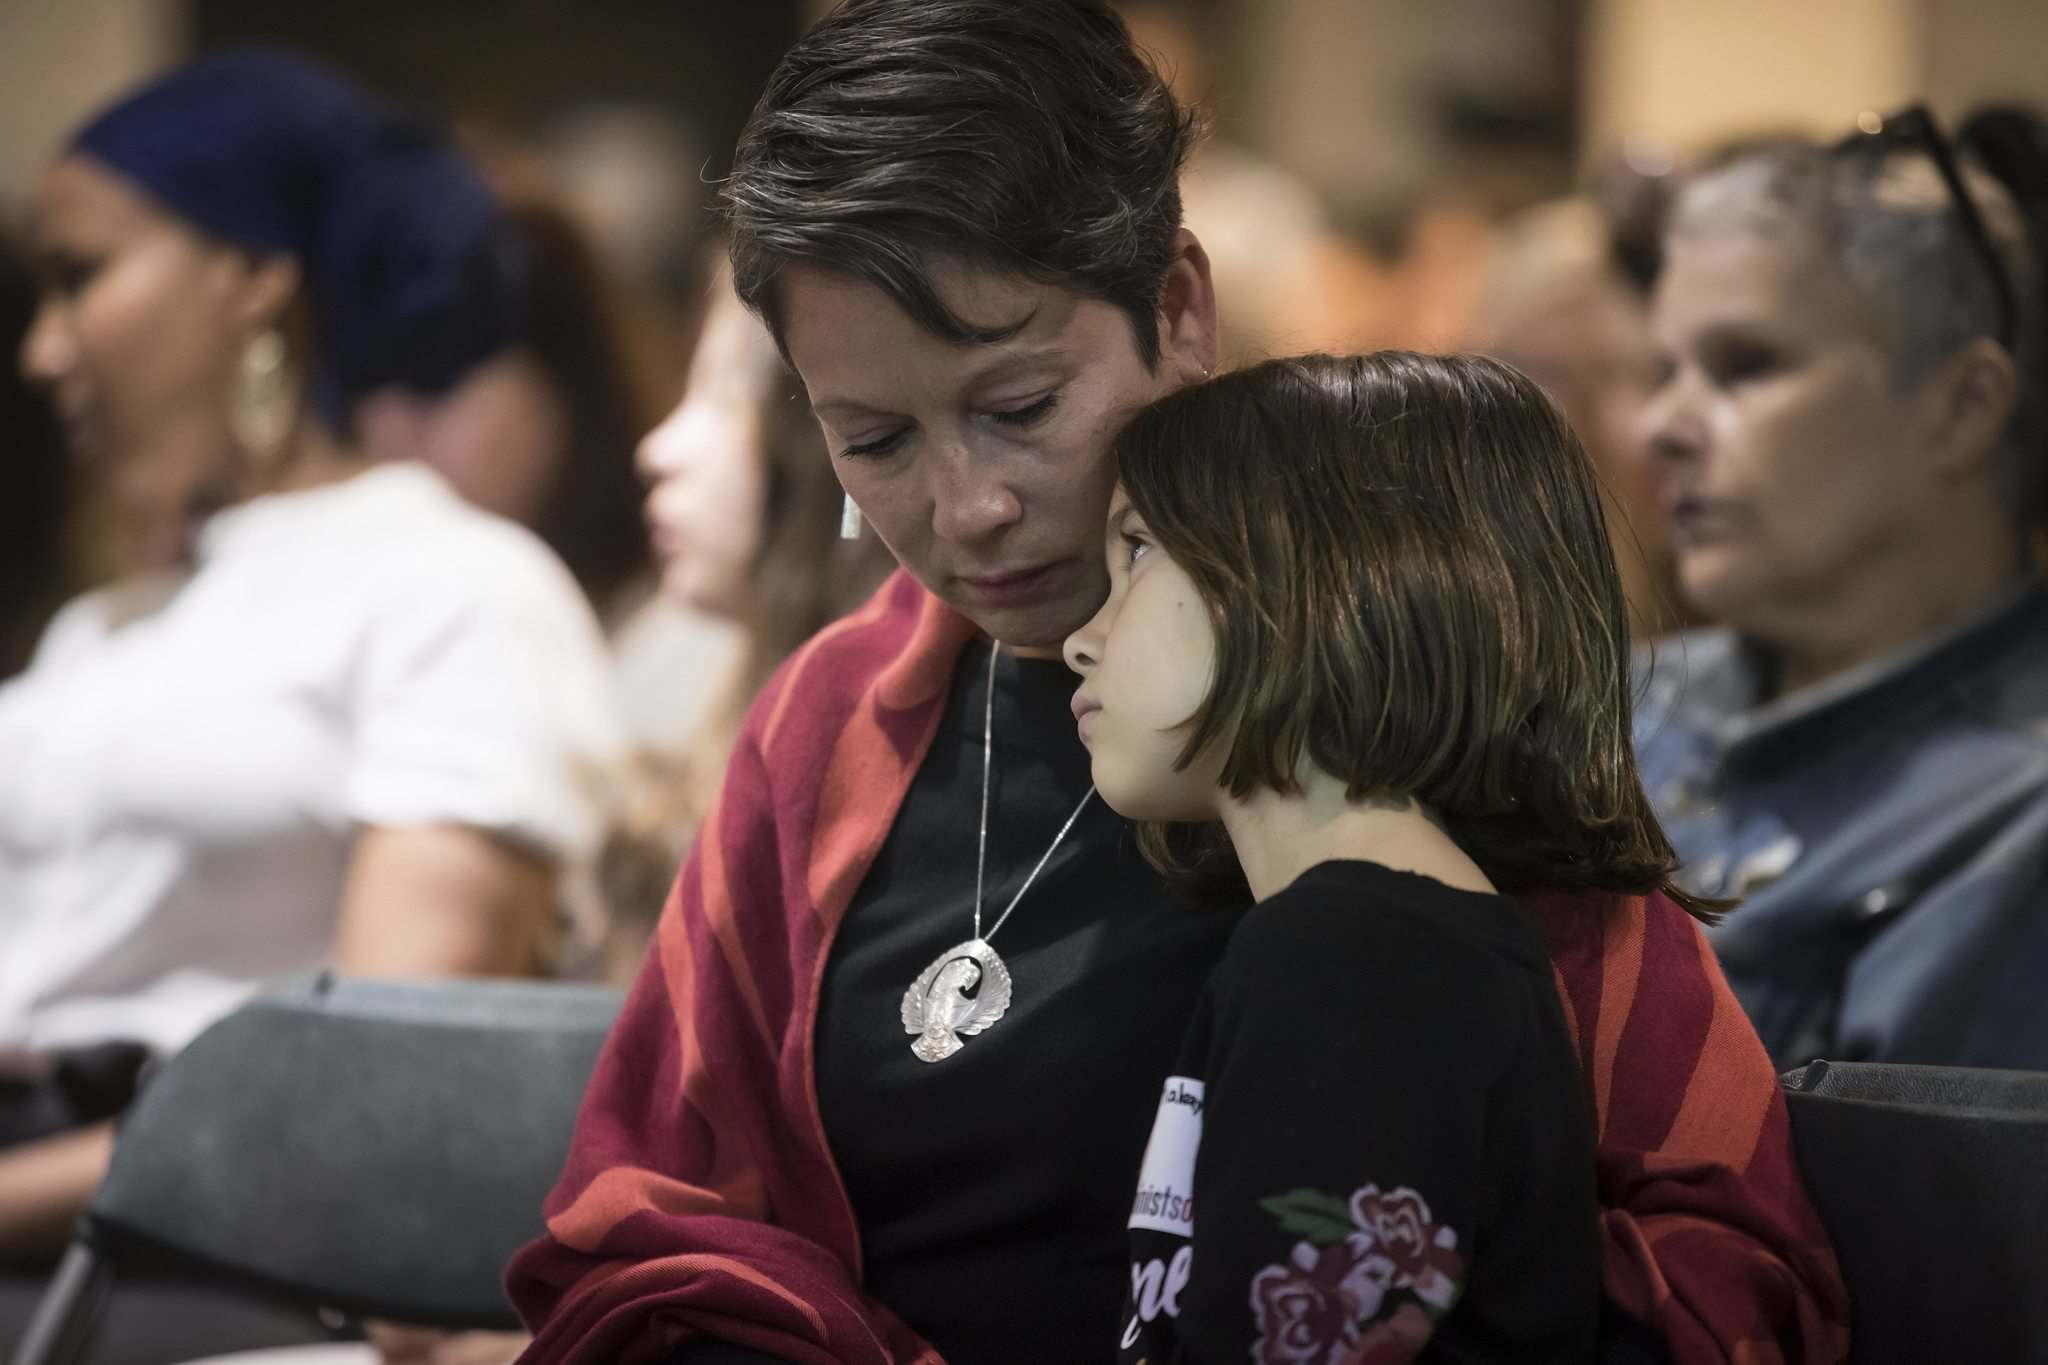 Darryl Dyck / The Canadian Press</p><p>British Columbia Minister of Advanced Education and Skills Training Melanie Mark and her daughter Makayla, 8, listen as Indigenous women and allies respond to the report on the National Inquiry into Missing and Murdered Indigenous Women and Girls, in Vancouver, on June 3.</p>